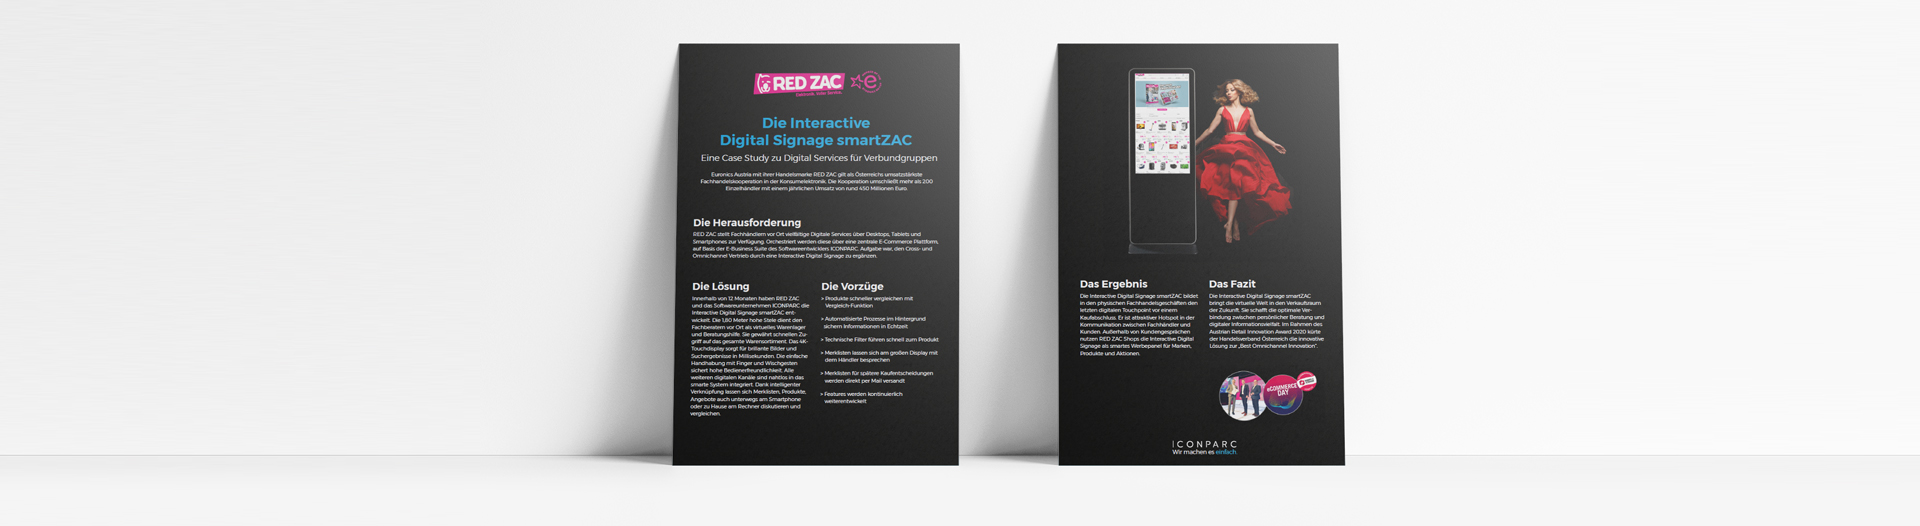 Case Study RED ZAC Digital Signage ICONPARC